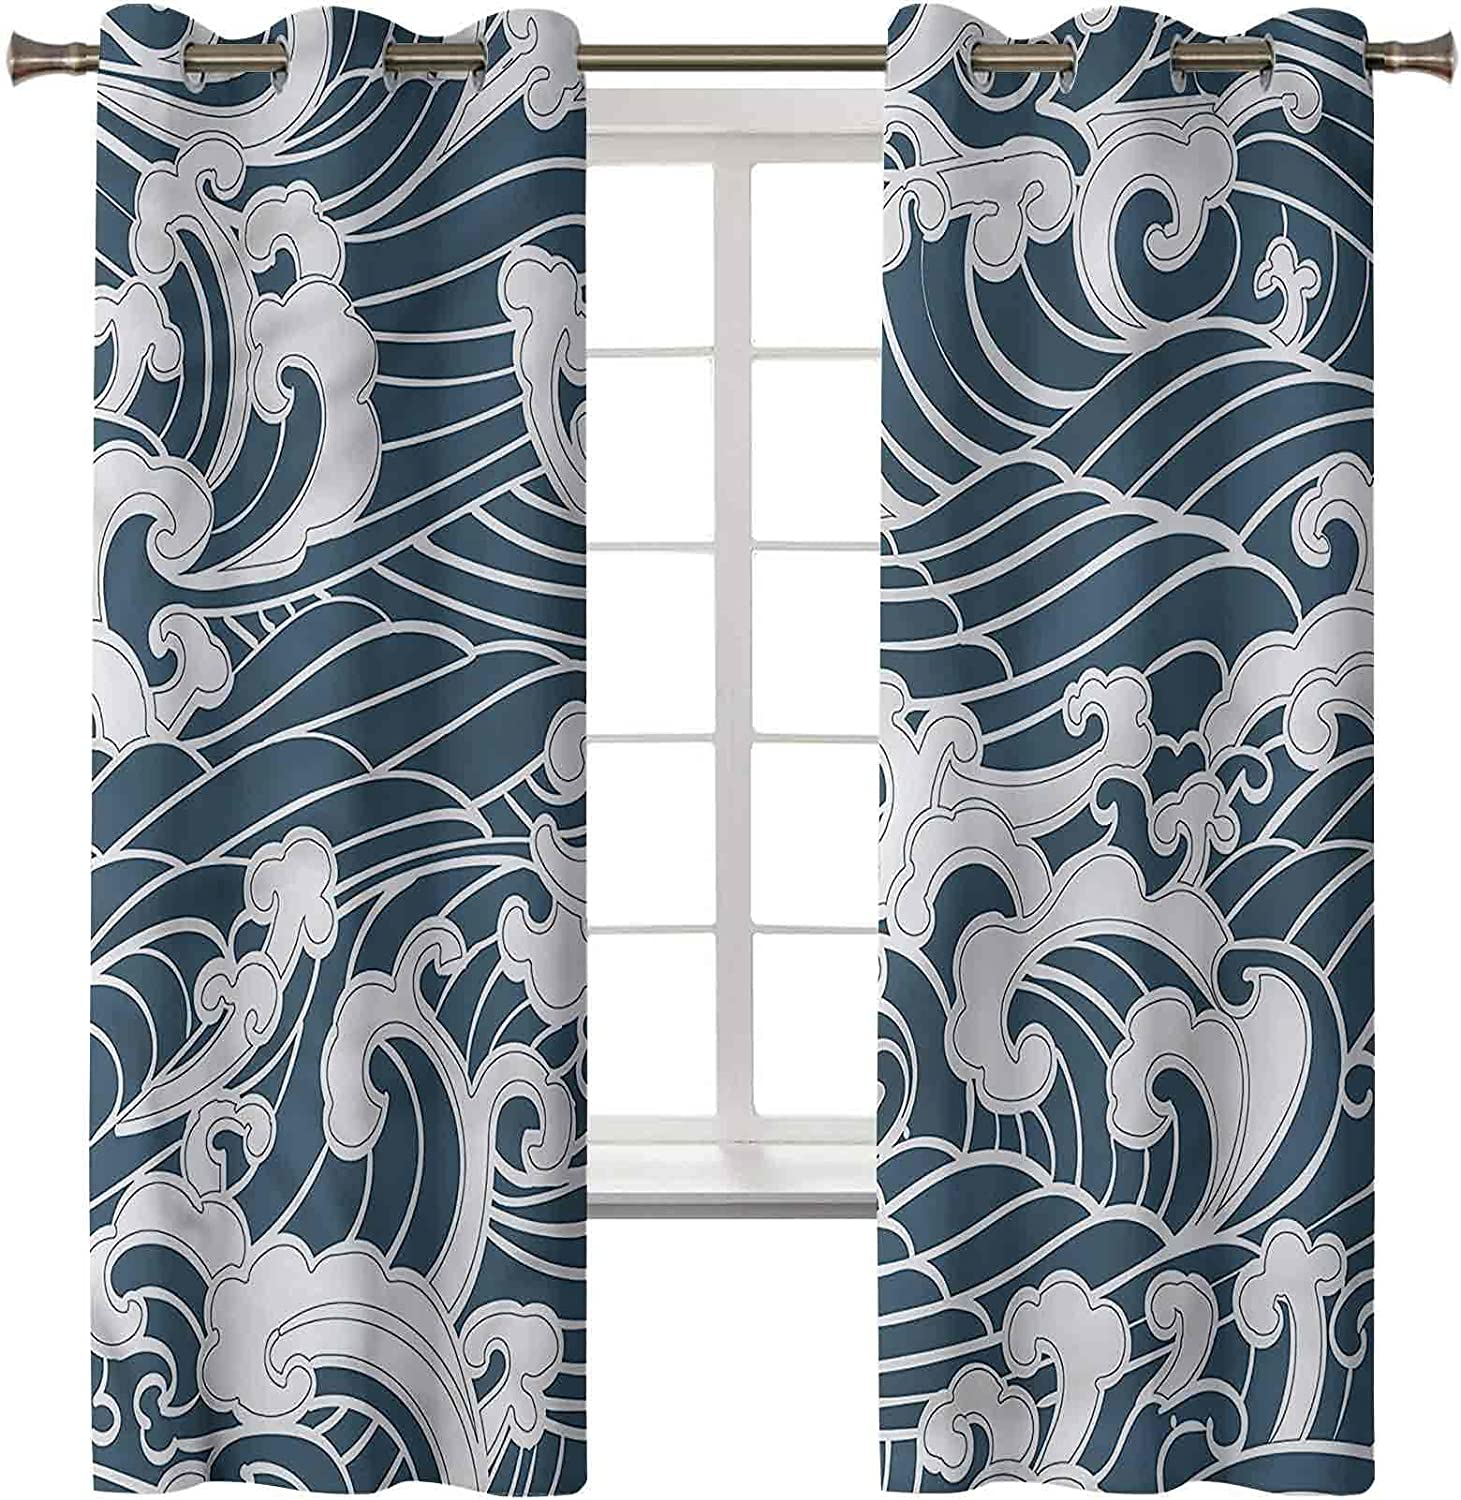 Japanese Wave Blackout Curtains Set of Panels 38W Max 66% OFF x 45L Inch 2 Max 67% OFF